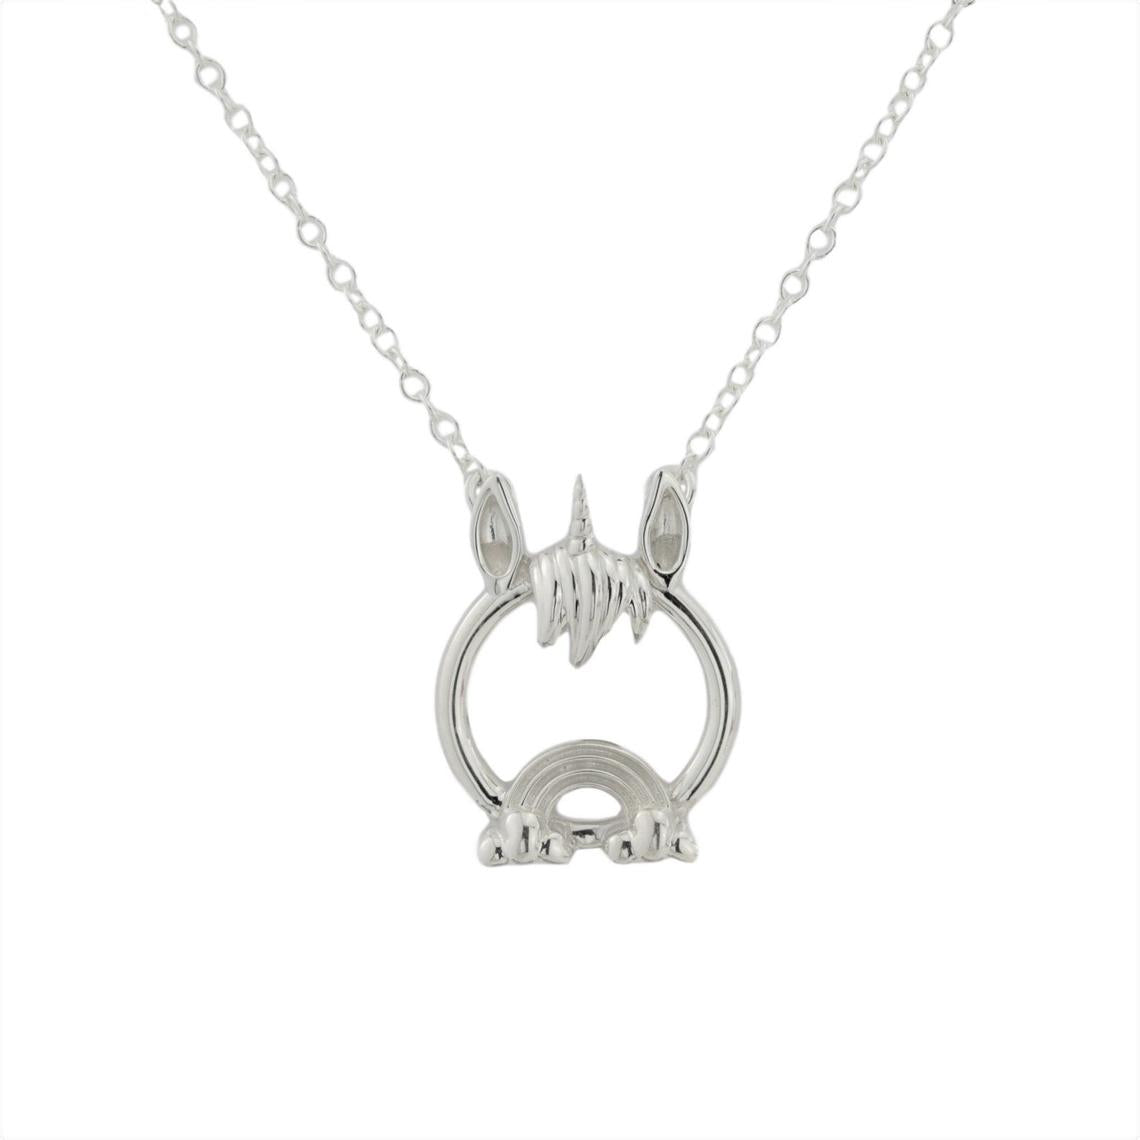 Solid 925 Sterling Silver Pet Unicorn O Ring BDSM Day Collar